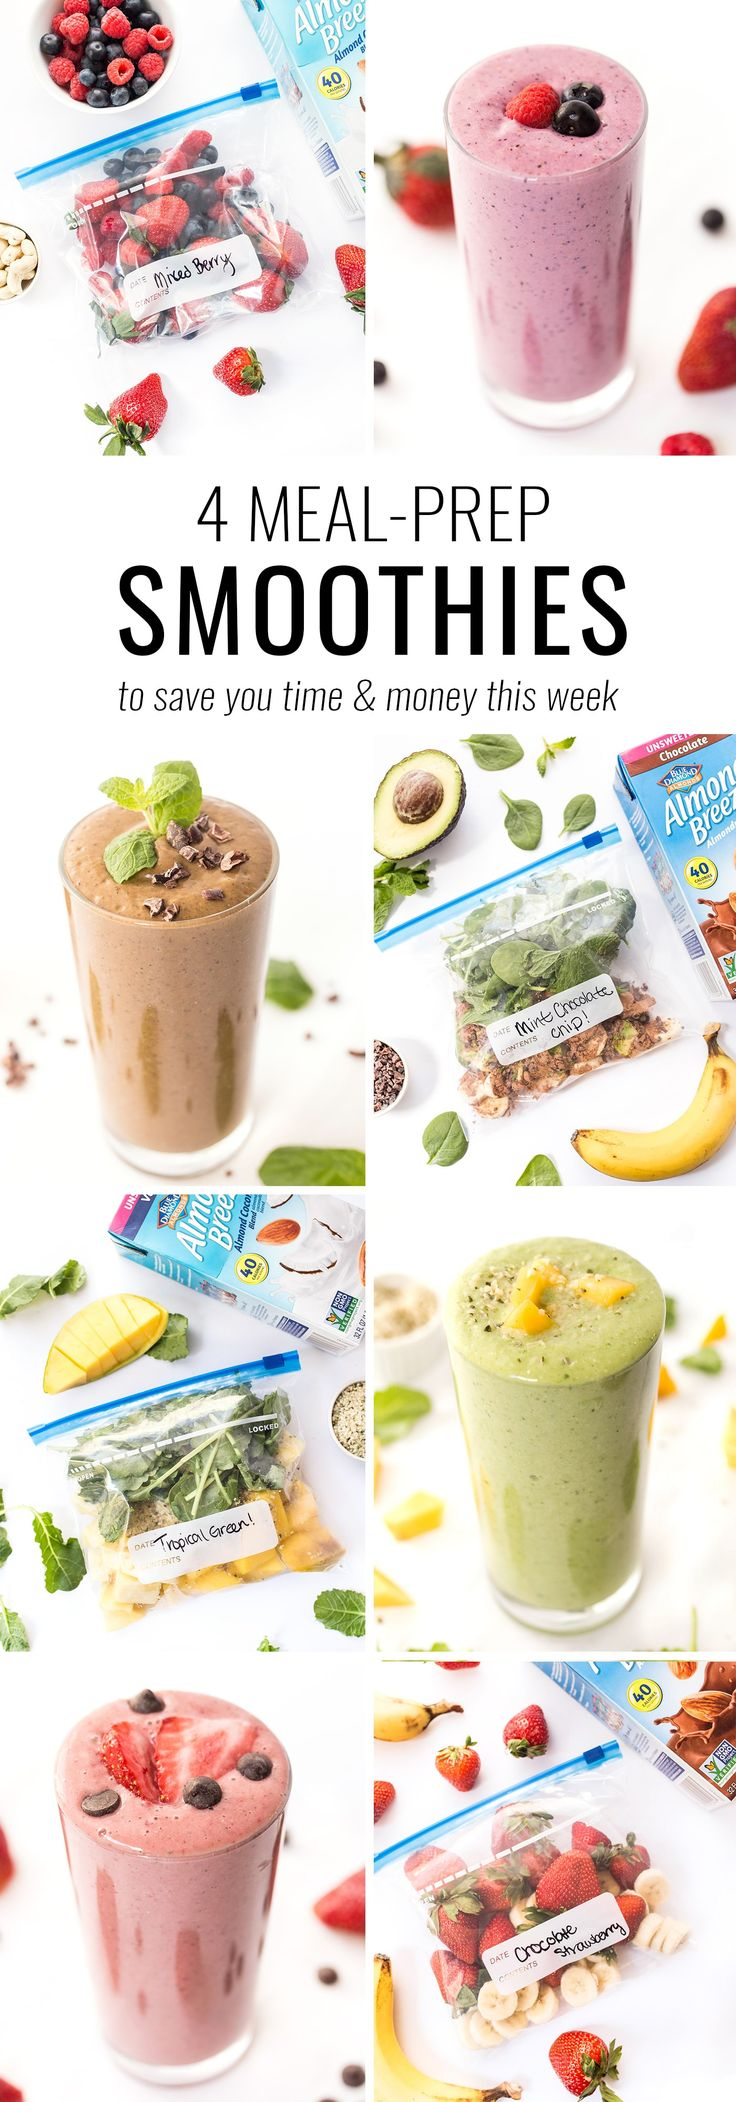 Slimming Smoothie Recipes: Just in Time for Summer